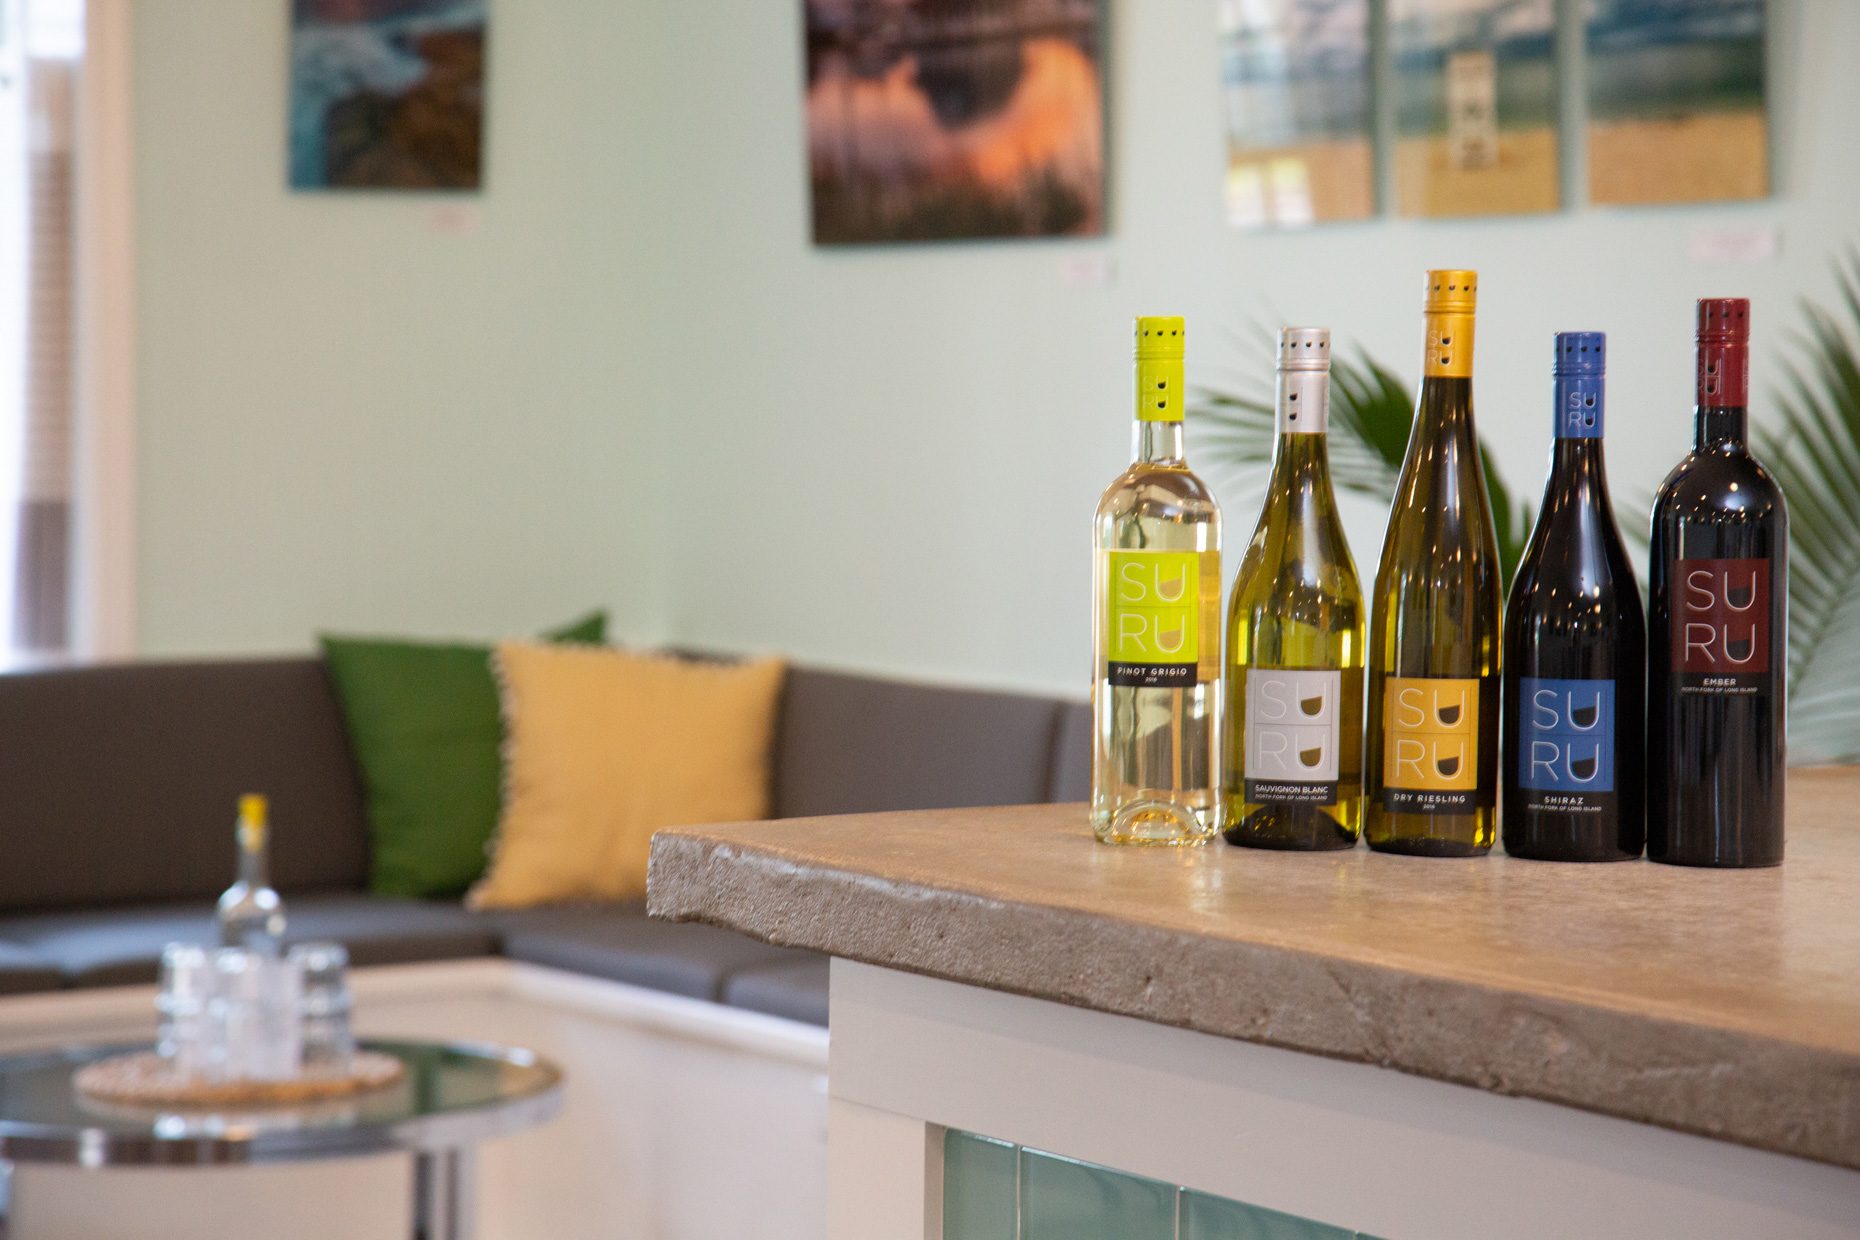 Suhru-Tasting-Room-Cutchoque-Long-Island-North-Fork-Travel-Photography-Caryn-B-Davis